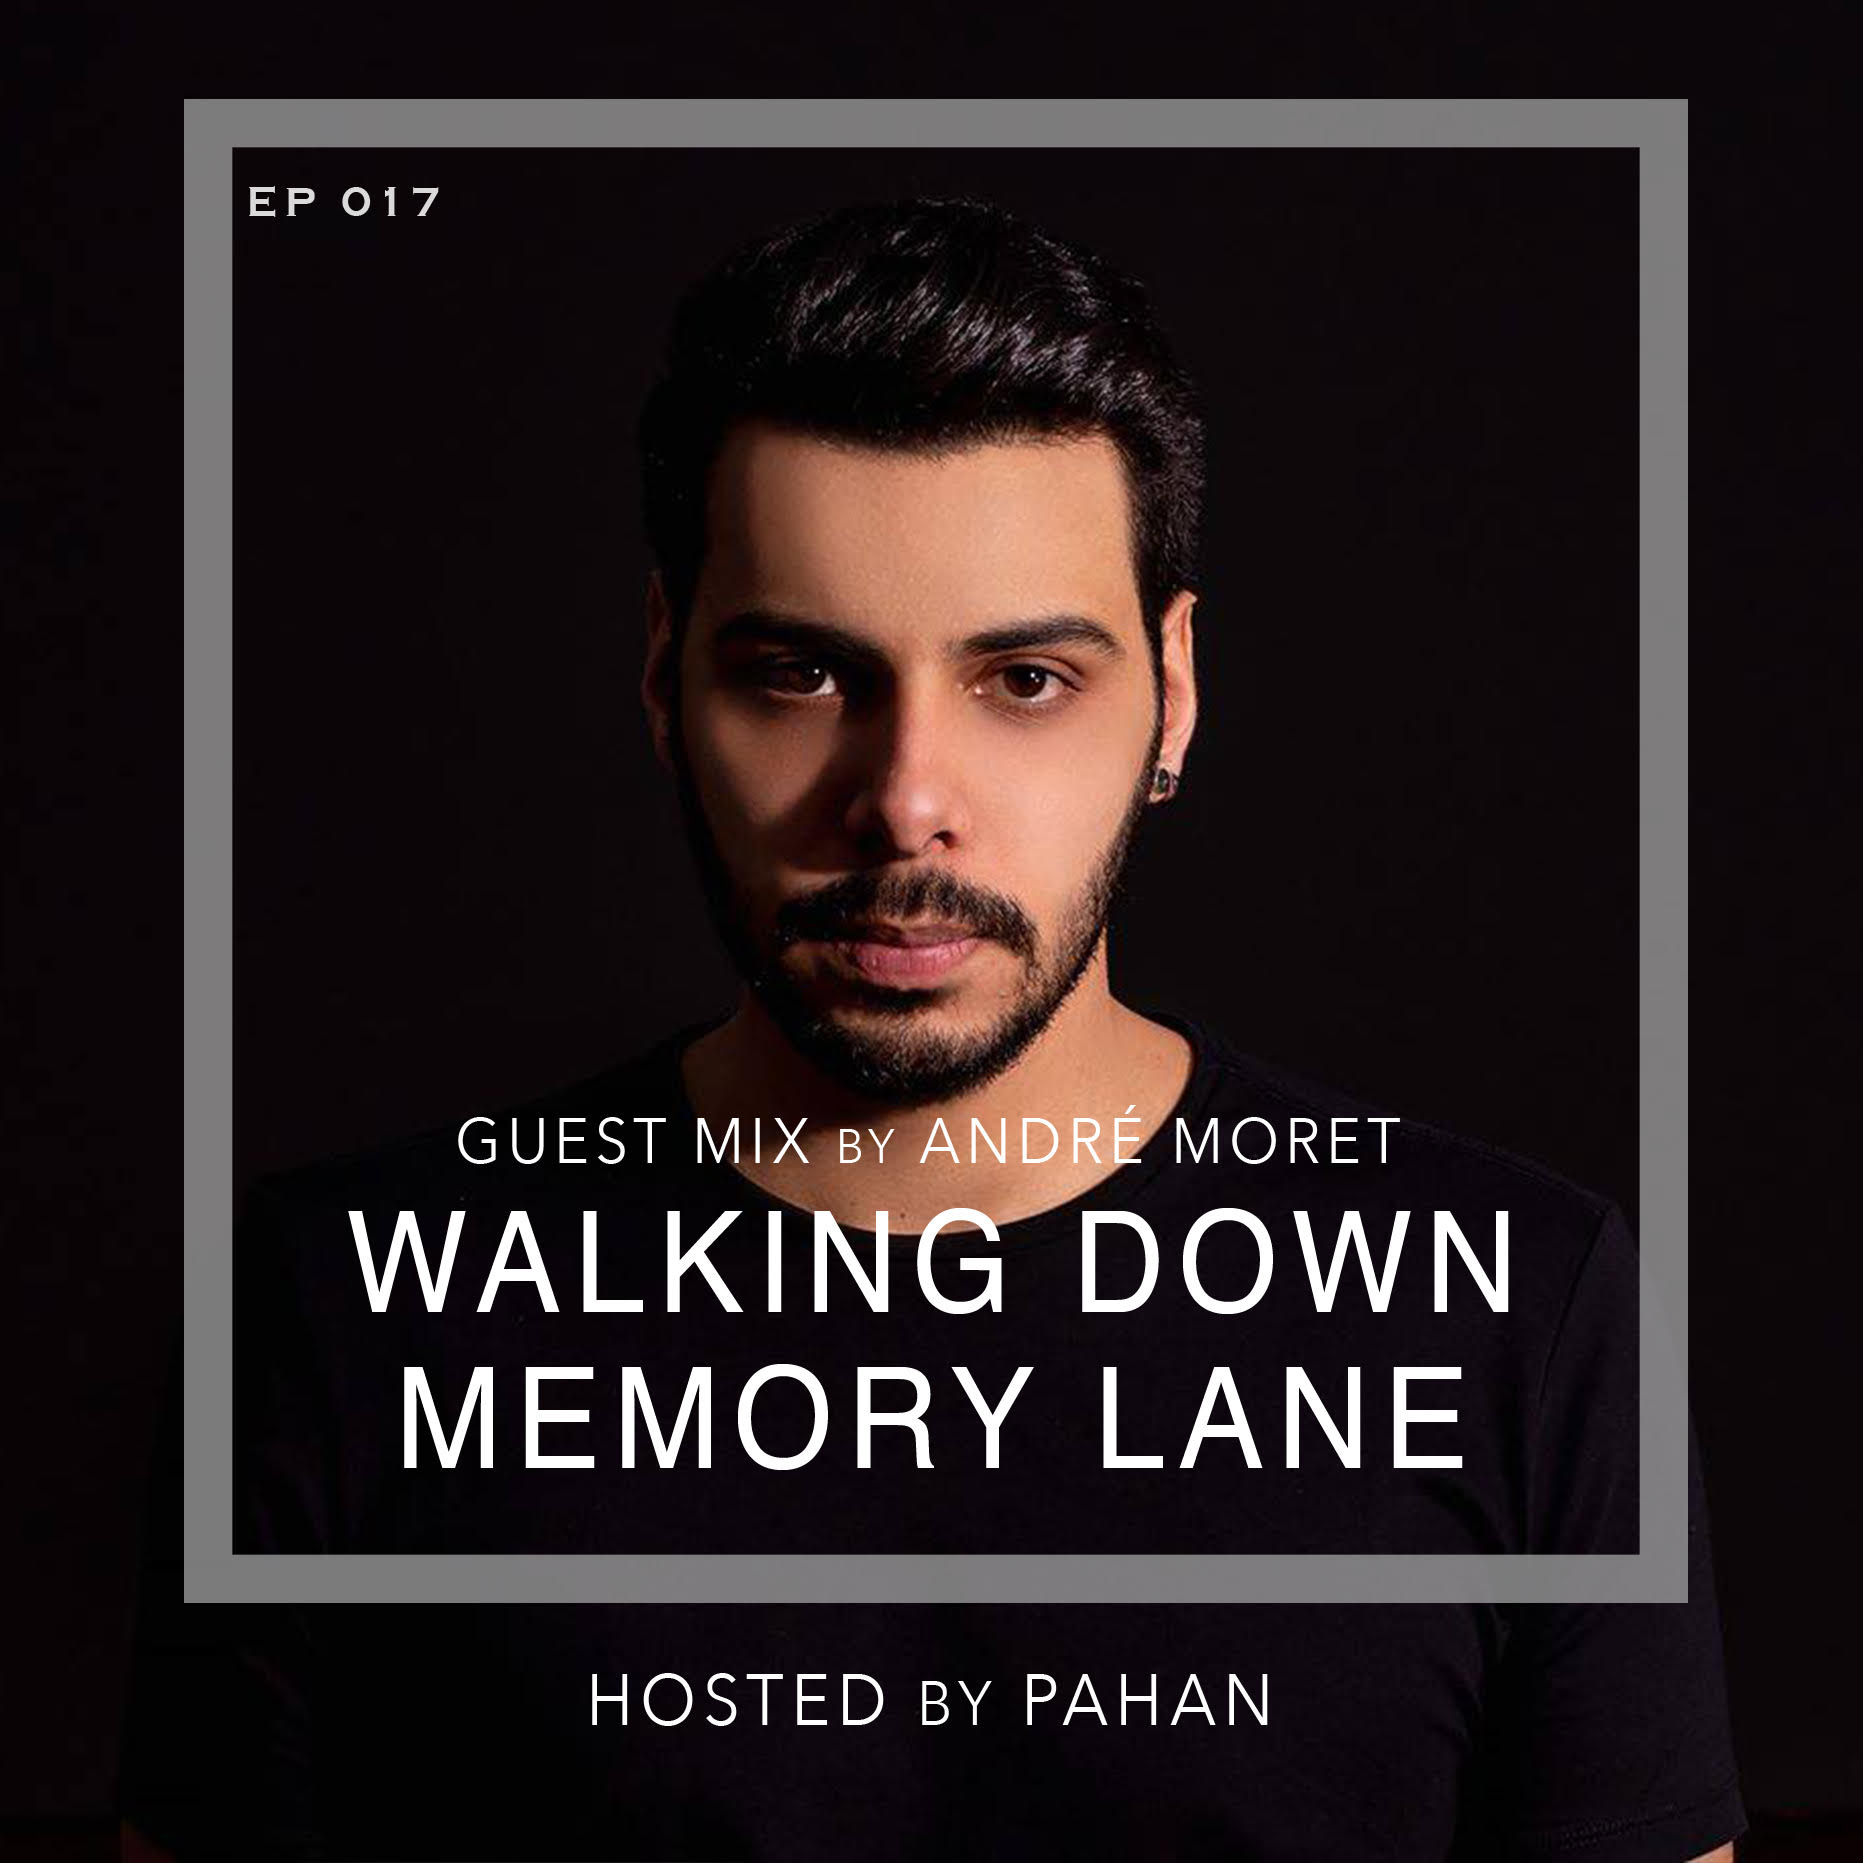 Walking Down Memory Lane :: Walking Down Memory Lane |17| Guest Mix by ANDRÉ MORET (aired on July 27th, 2020) banner logo